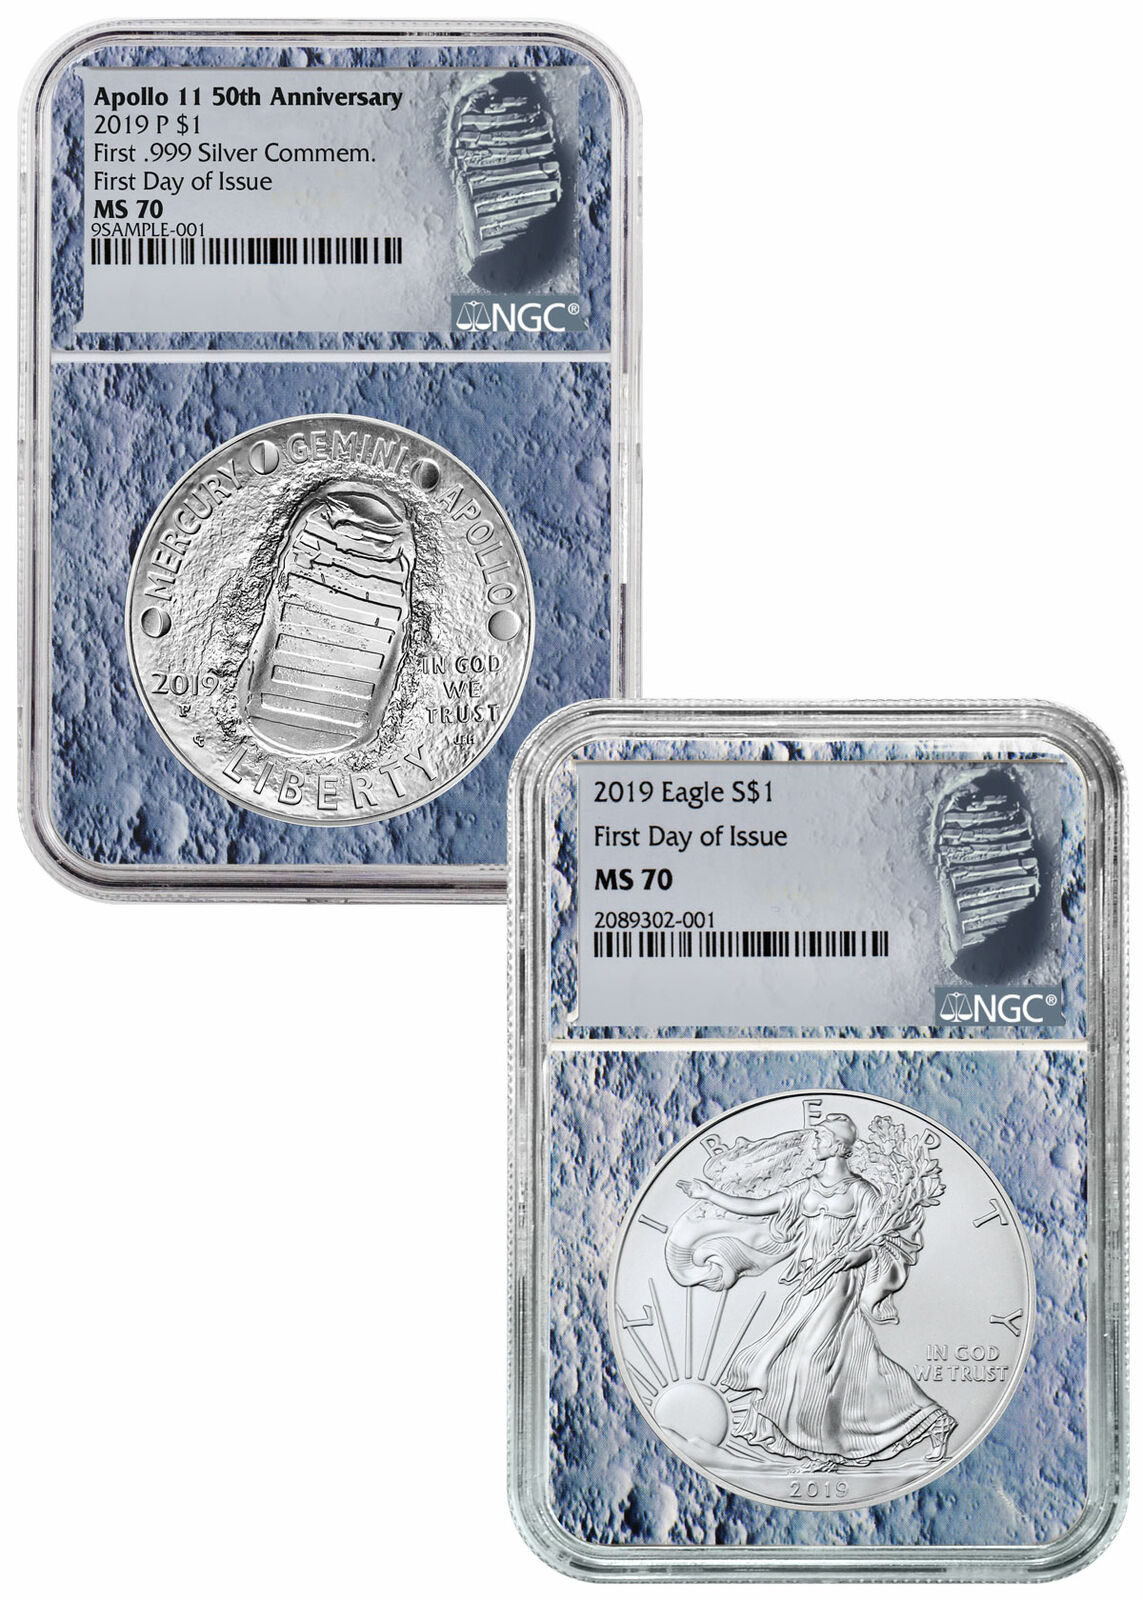 2019-P UNC $1 Apollo 11 50th Ann Silver Dollar NGC MS70 FDI ASF Label